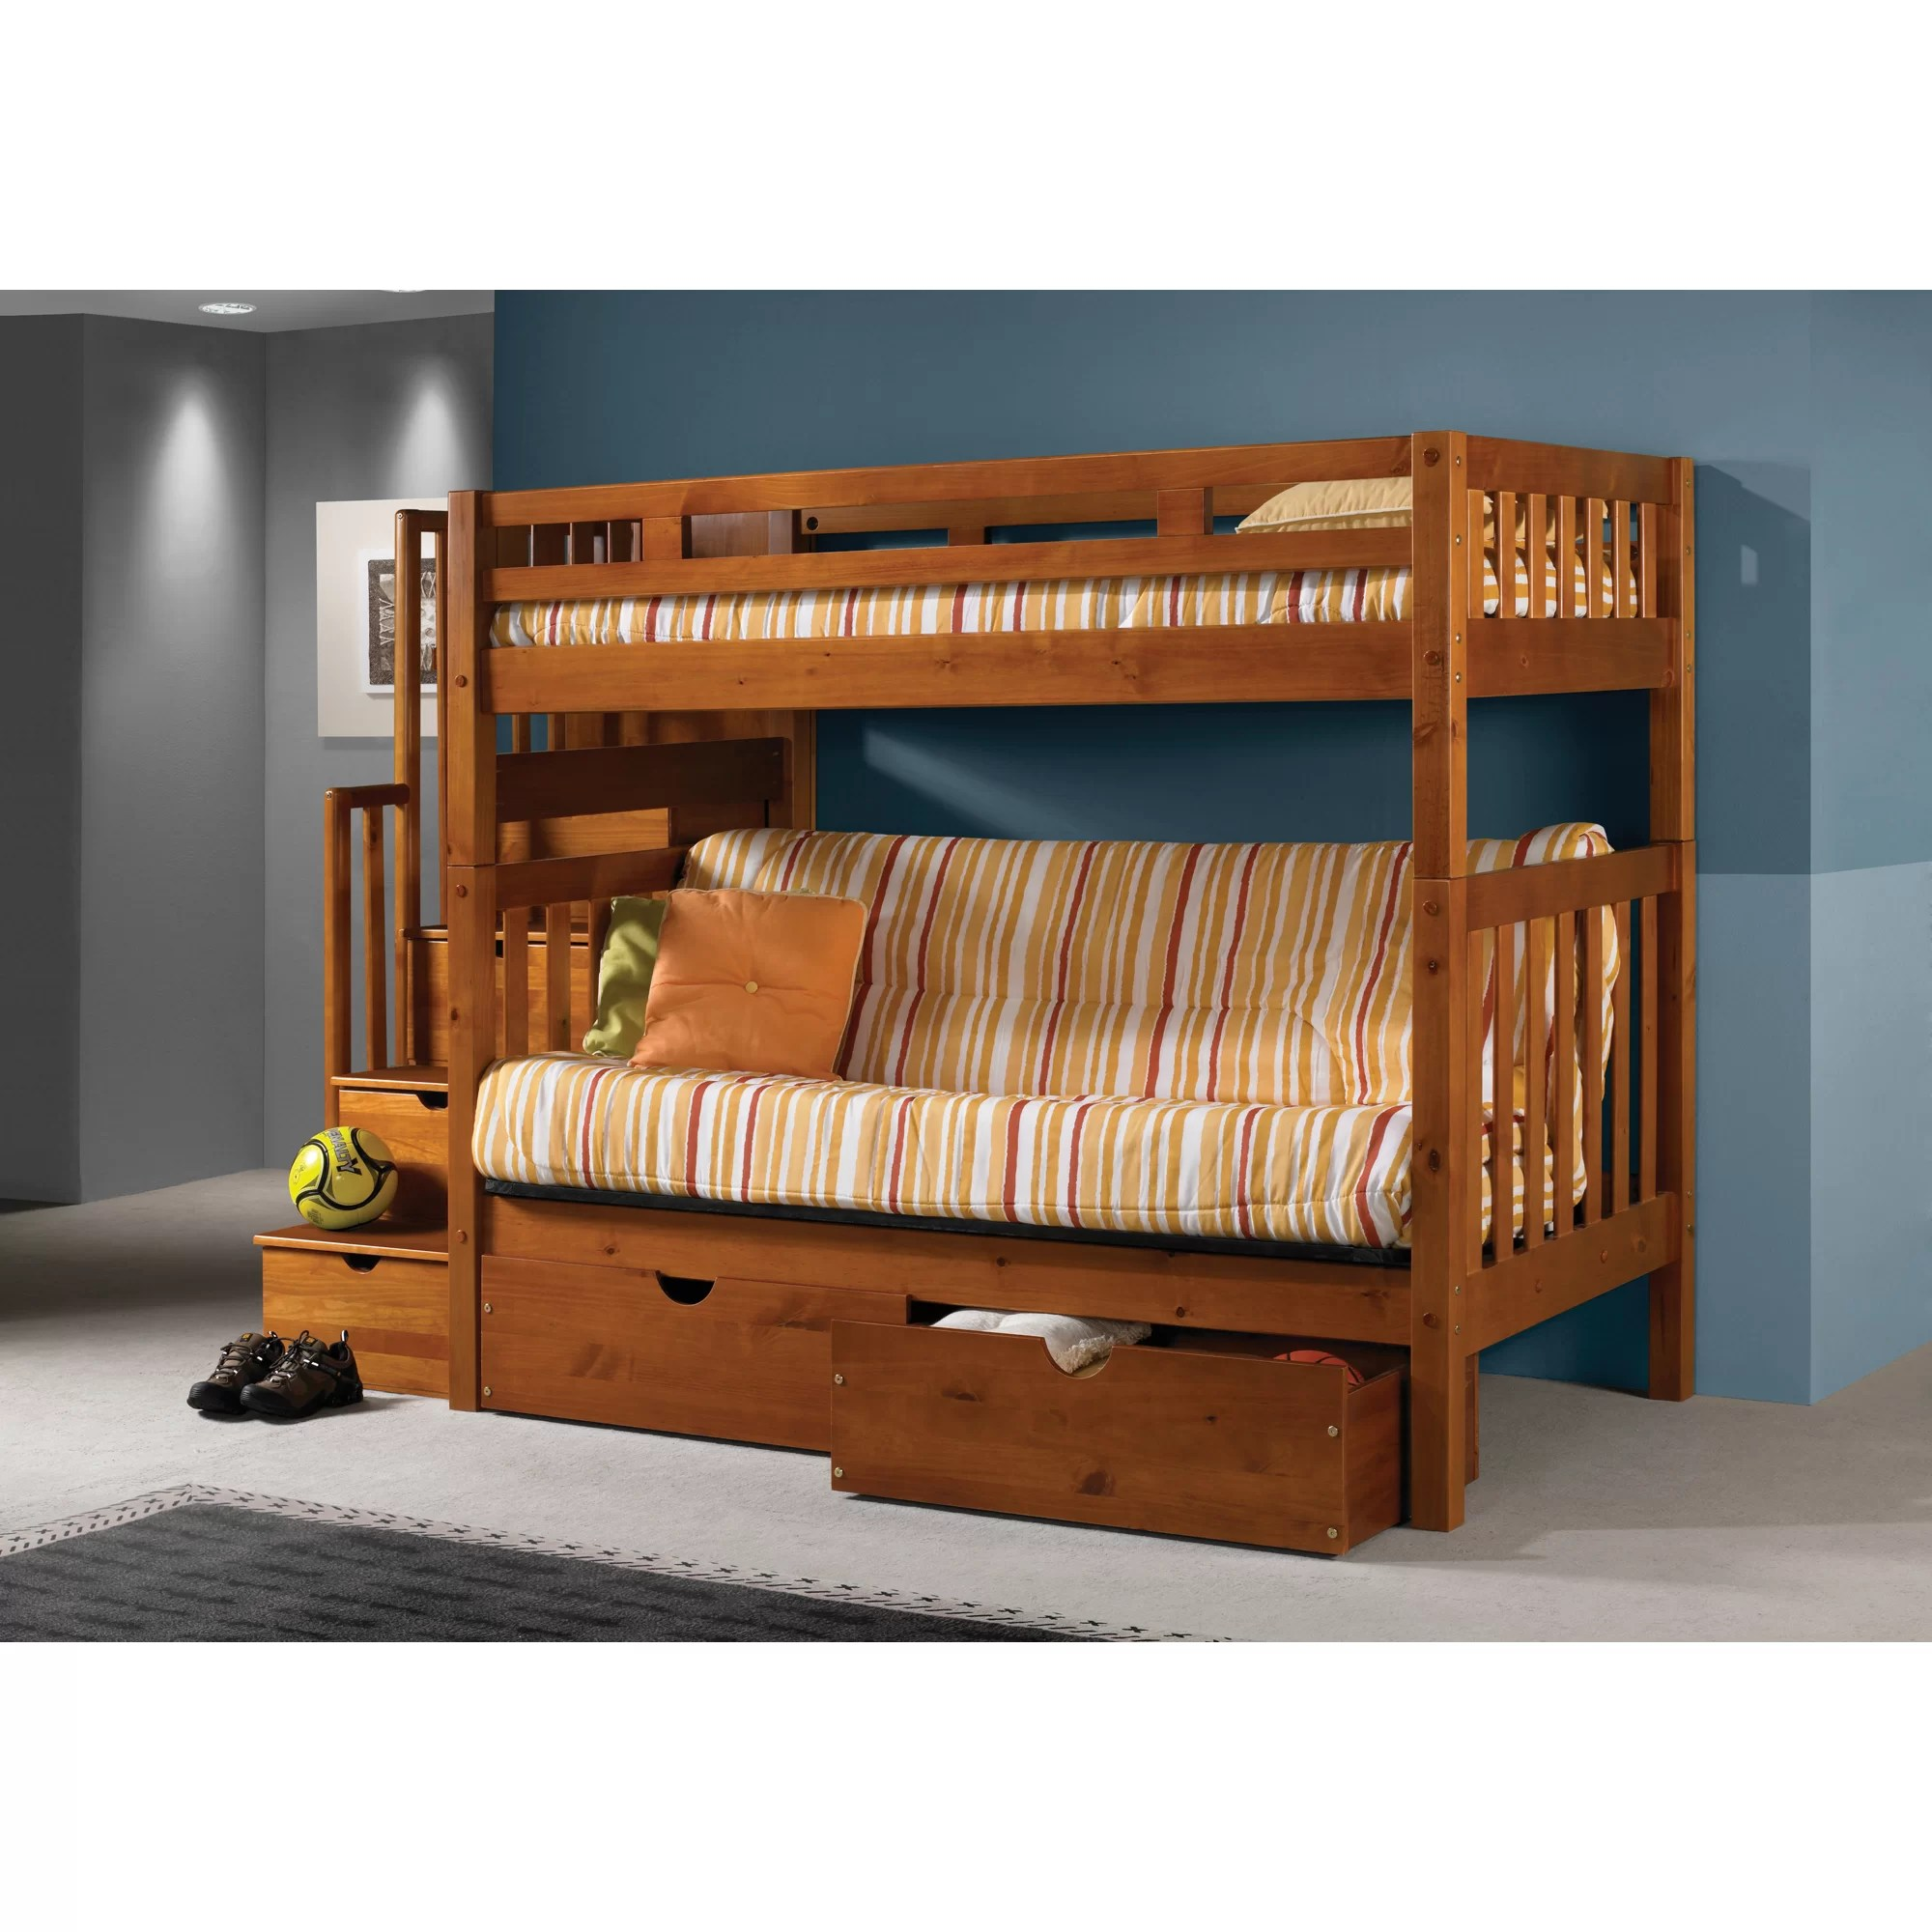 Bunk Beds With Storage Space Donco Kids Stairway Loft Bunk Bed With Storage Drawers